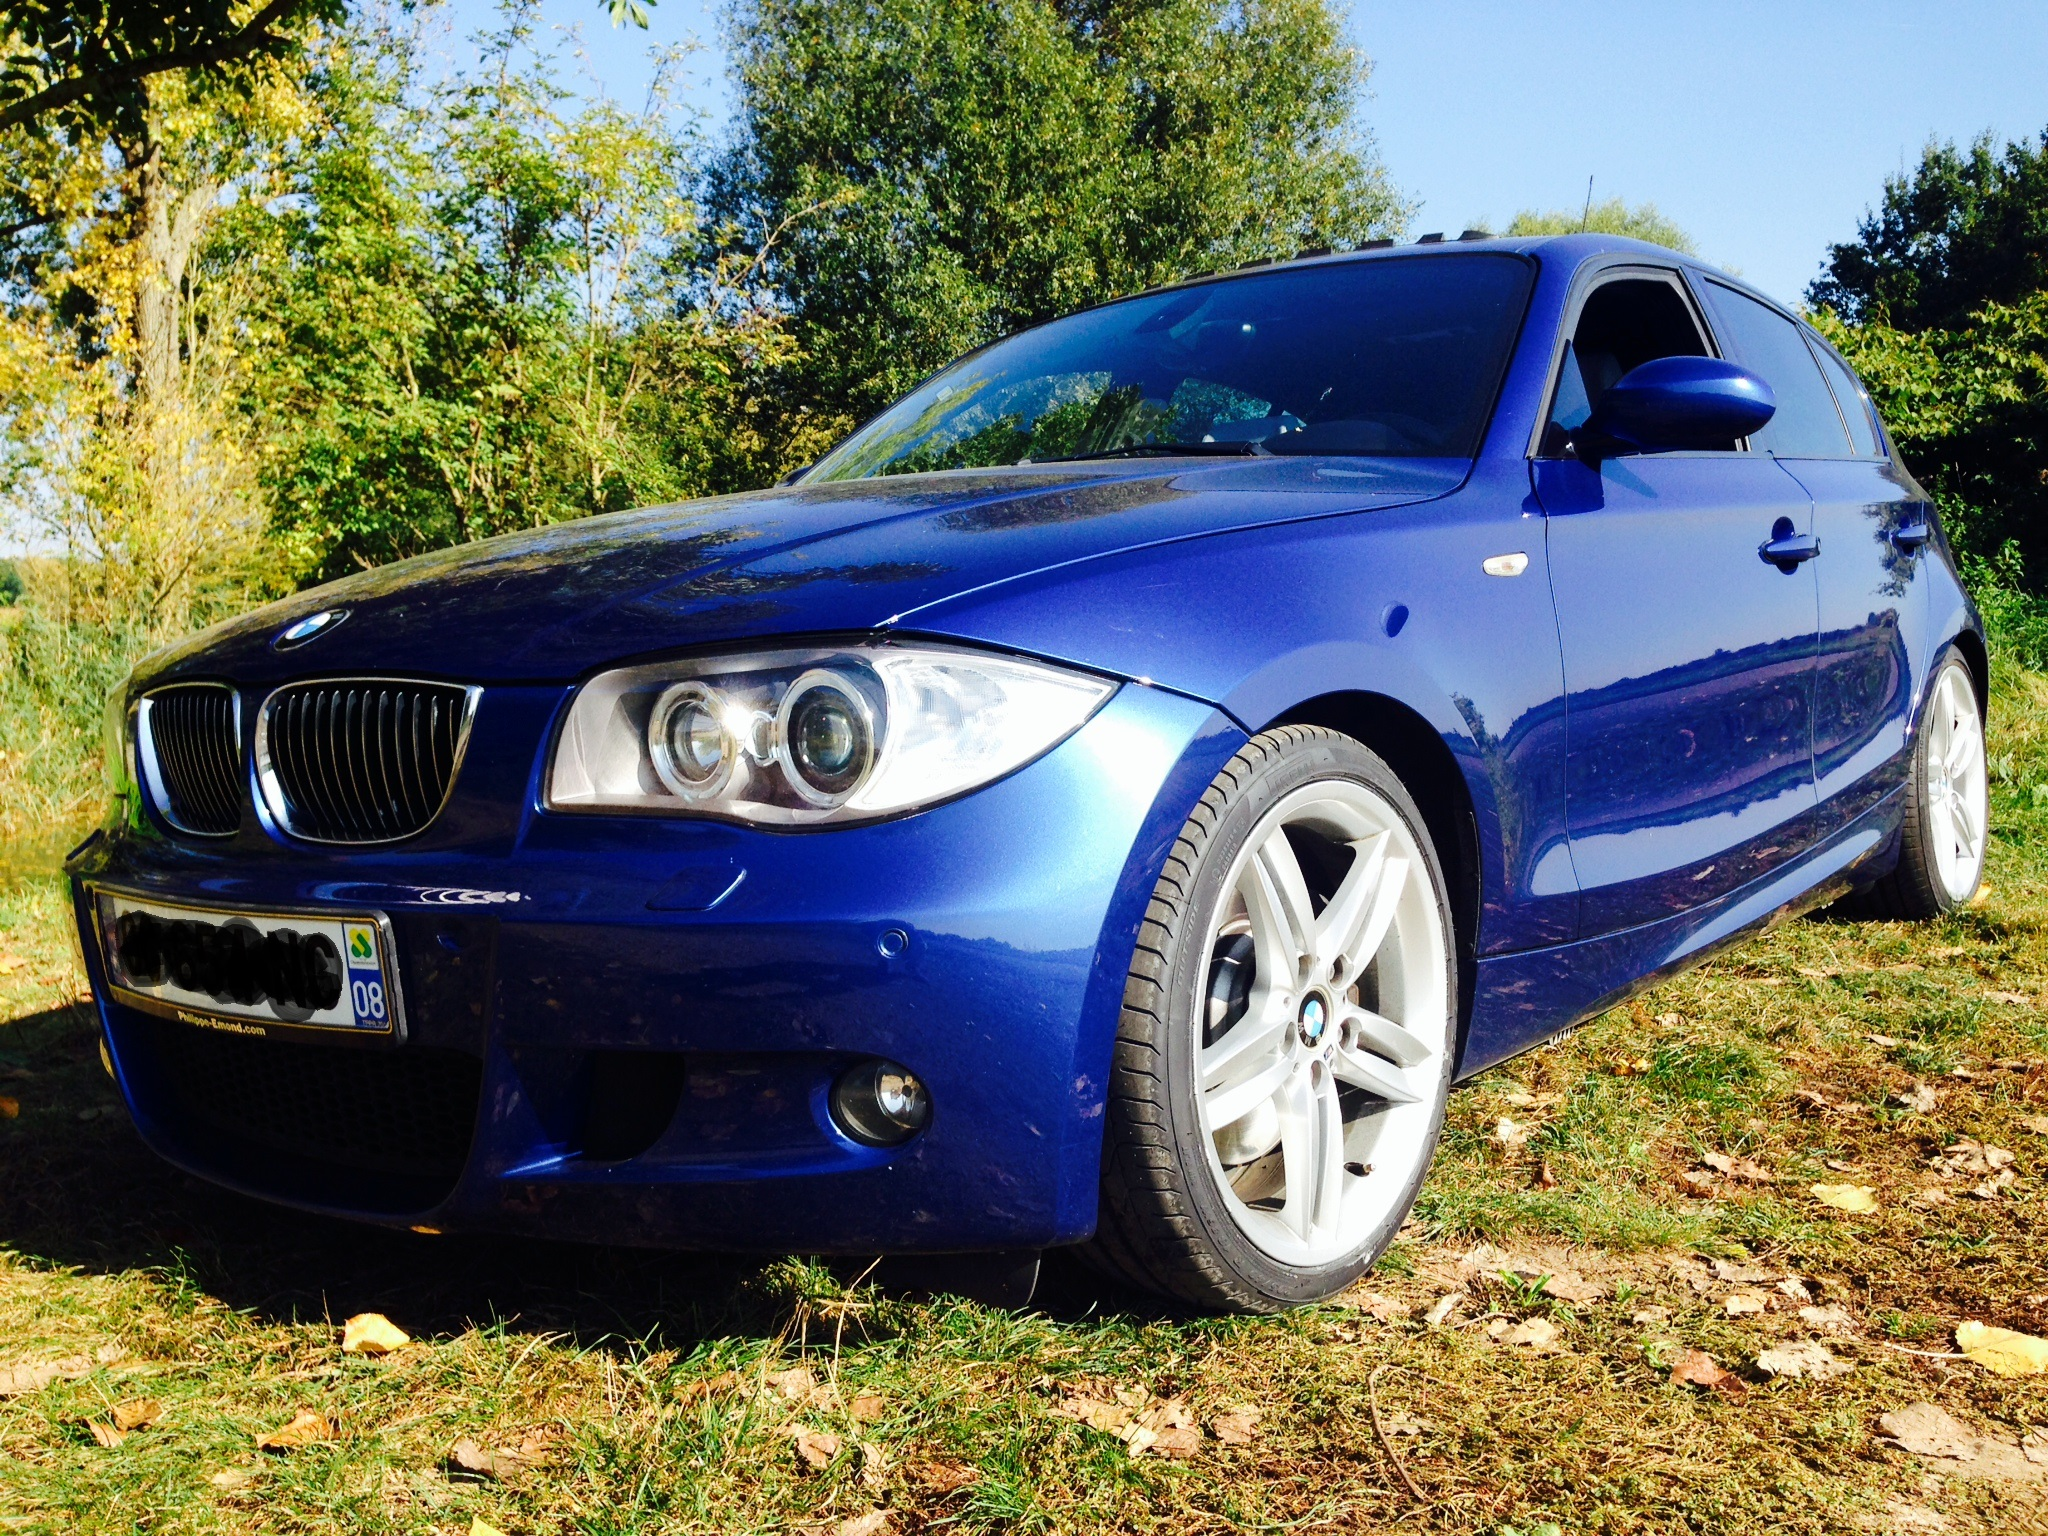 bmw 130i 2014 review amazing pictures and images look at the car. Black Bedroom Furniture Sets. Home Design Ideas